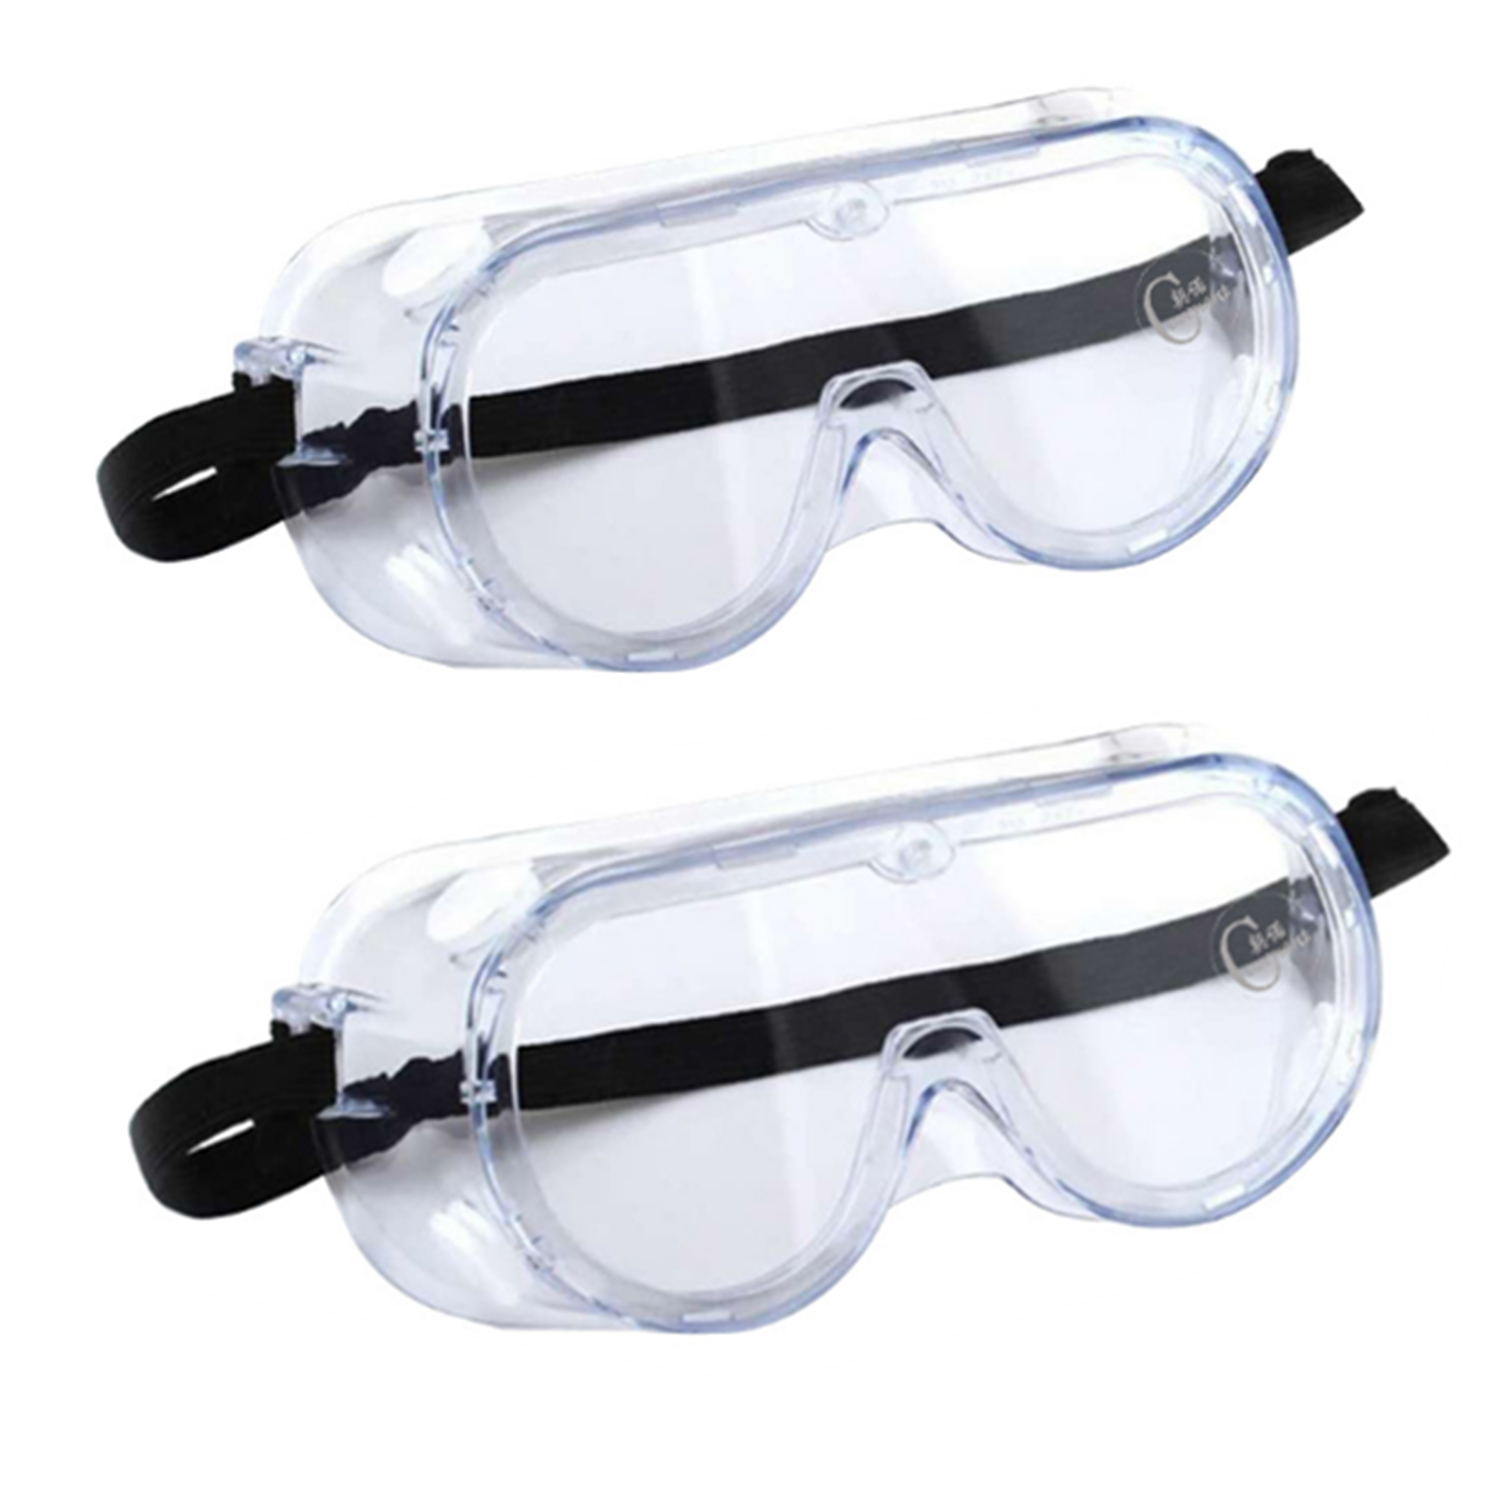 2PCS Safety Goggles Glasses Masks Protective Wide Vision Anti Dust Eye Mask Anti-Fog Splash Working Safety Goggles